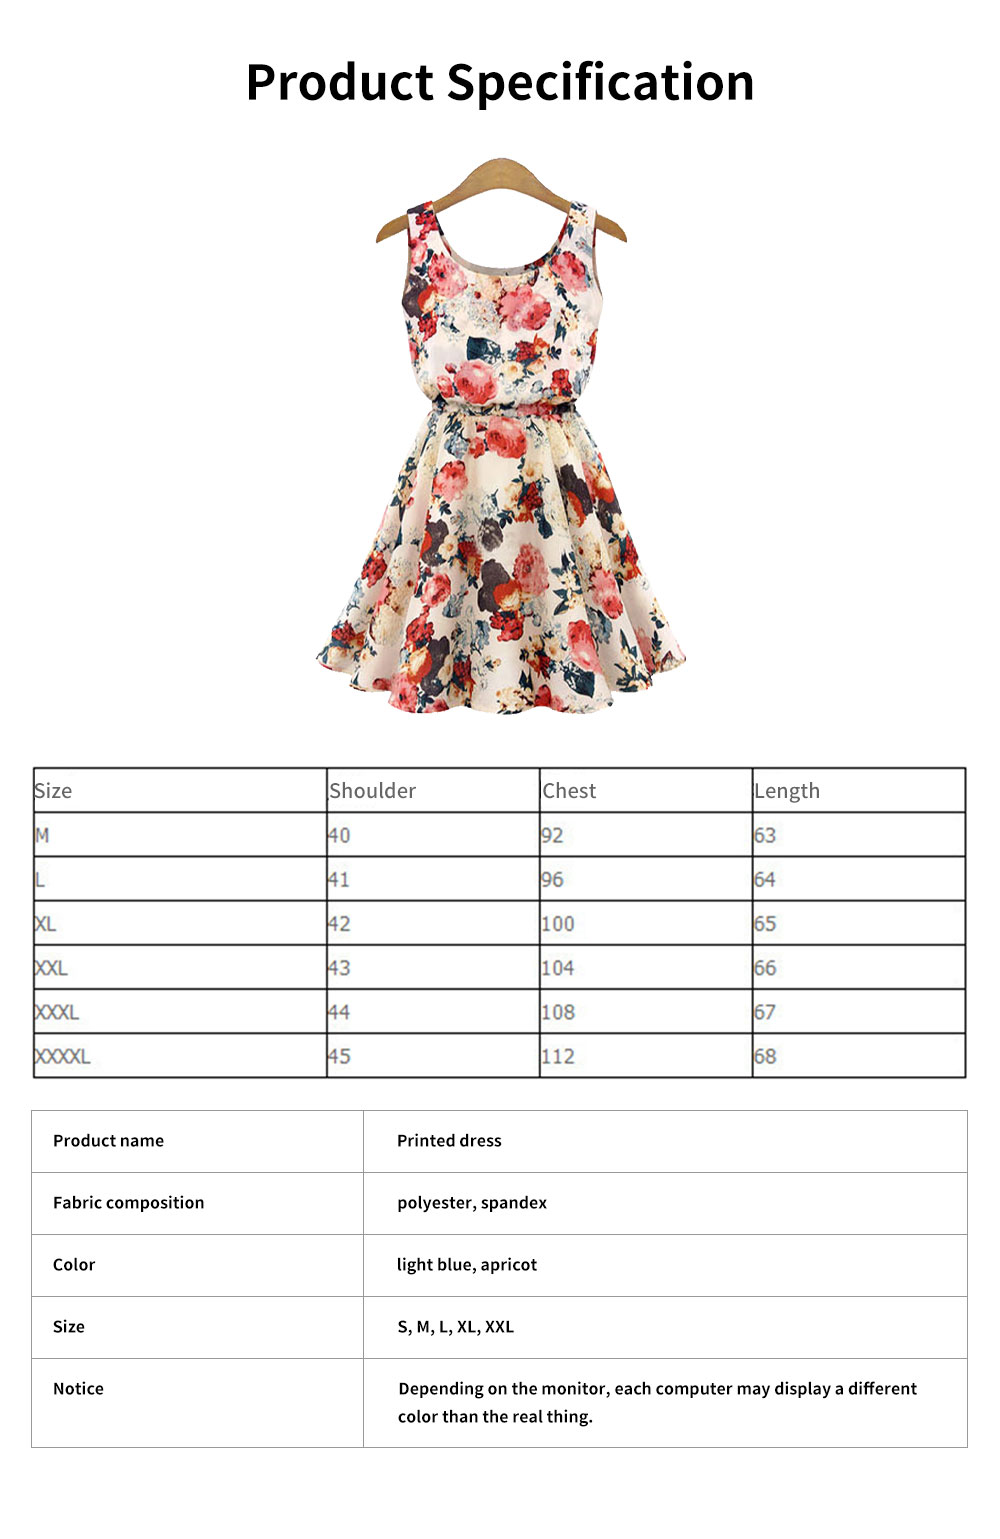 Printed Dress for Women Round Collar Exquisite Flower Printing Light Blue and Apricot Polyester One-piece Dresses Summer 6